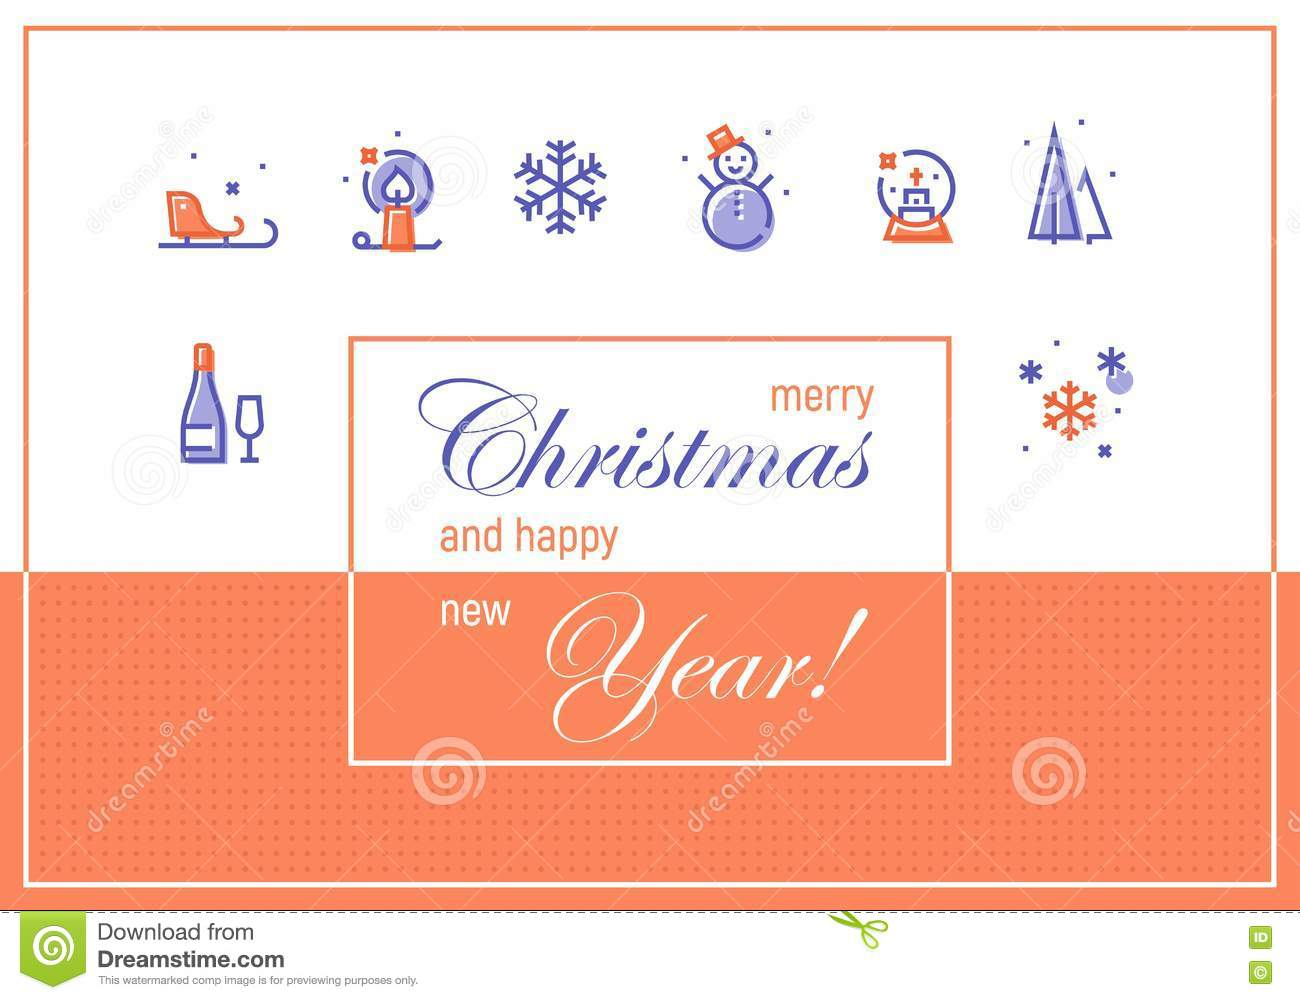 merry christmas and happy new year greeting cards template